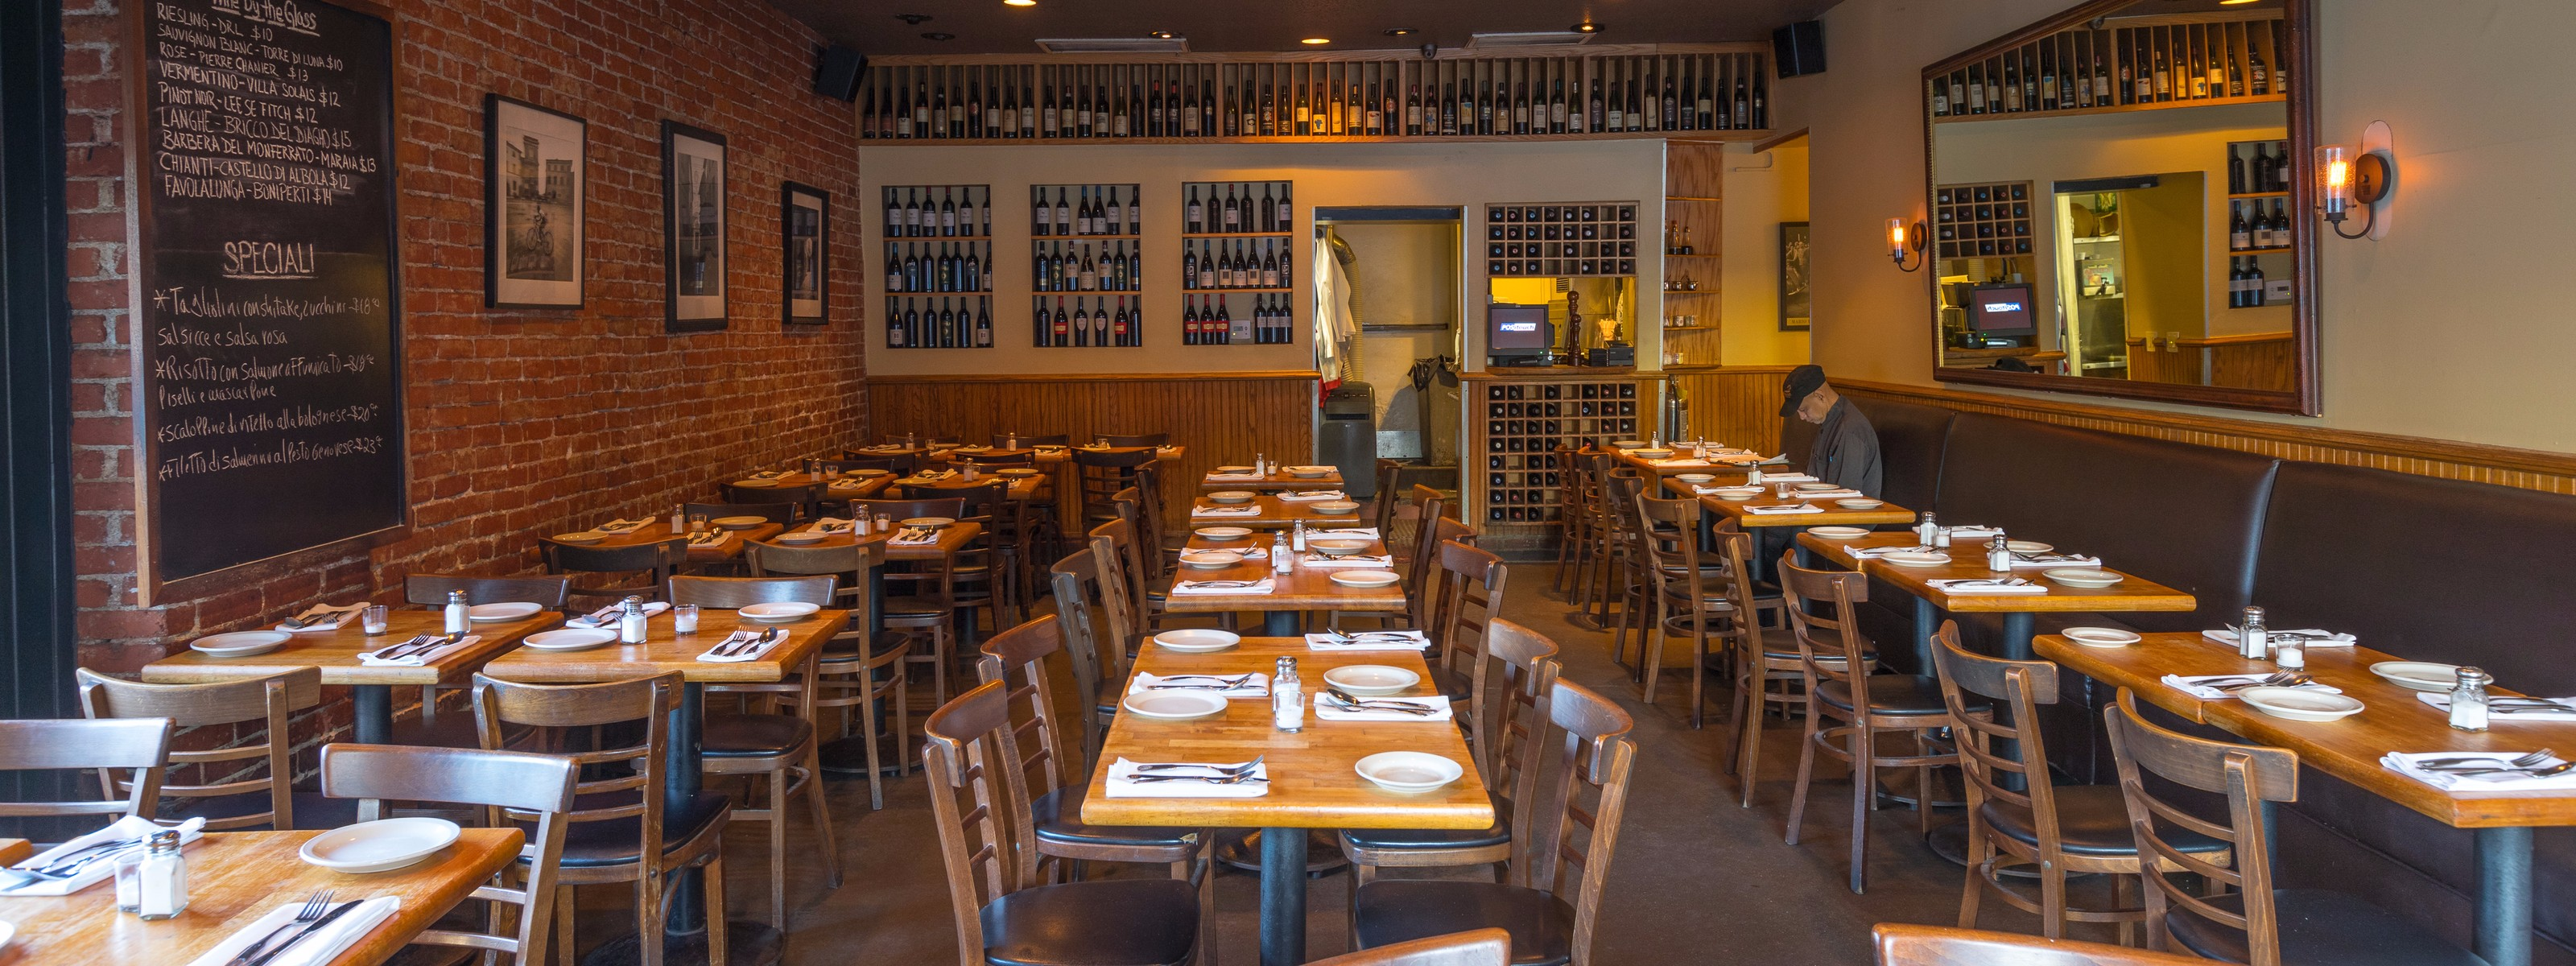 The Best Restaurants In Los Feliz Los Feliz Los Angeles The